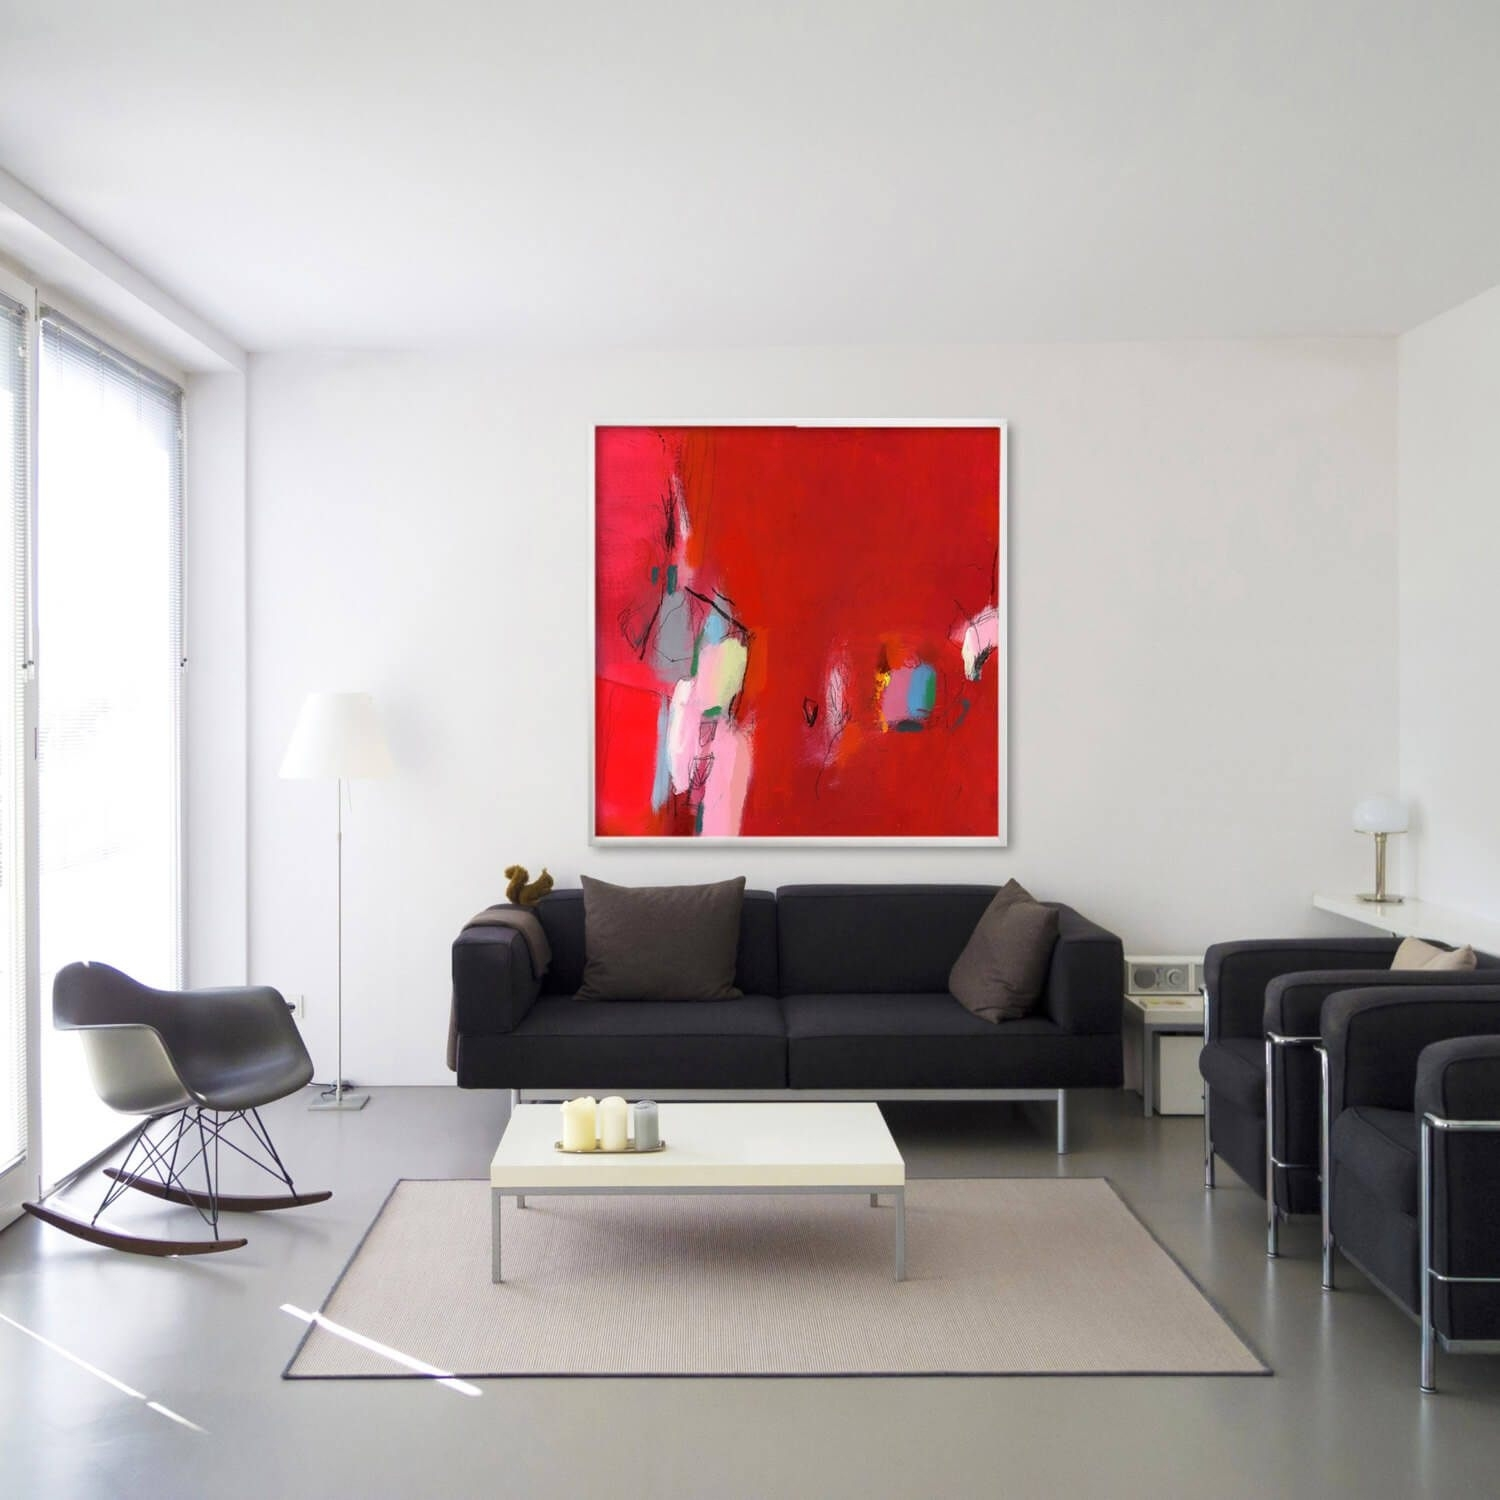 Explore Photos of Abstract Wall Art Living Room (Showing 7 of 20 Photos)